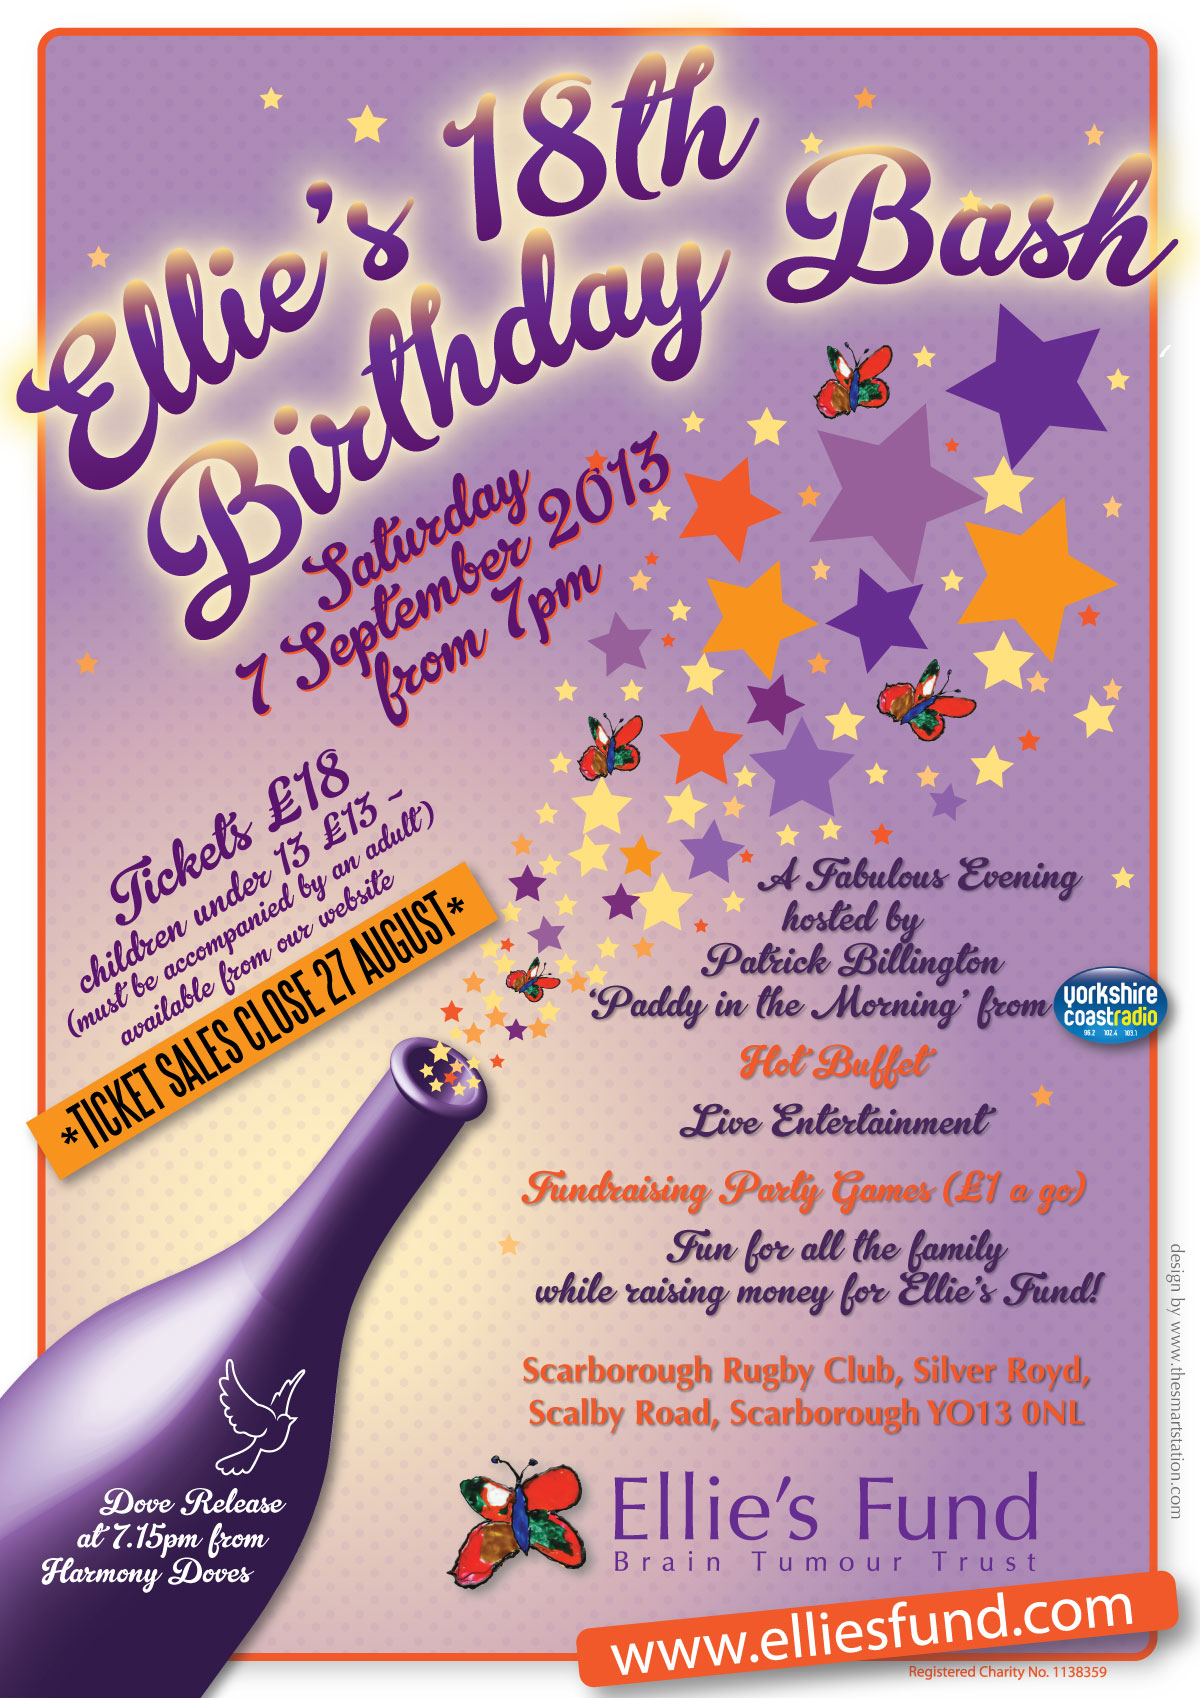 18th birthday poster designs ; ef-18-party-poster-v5